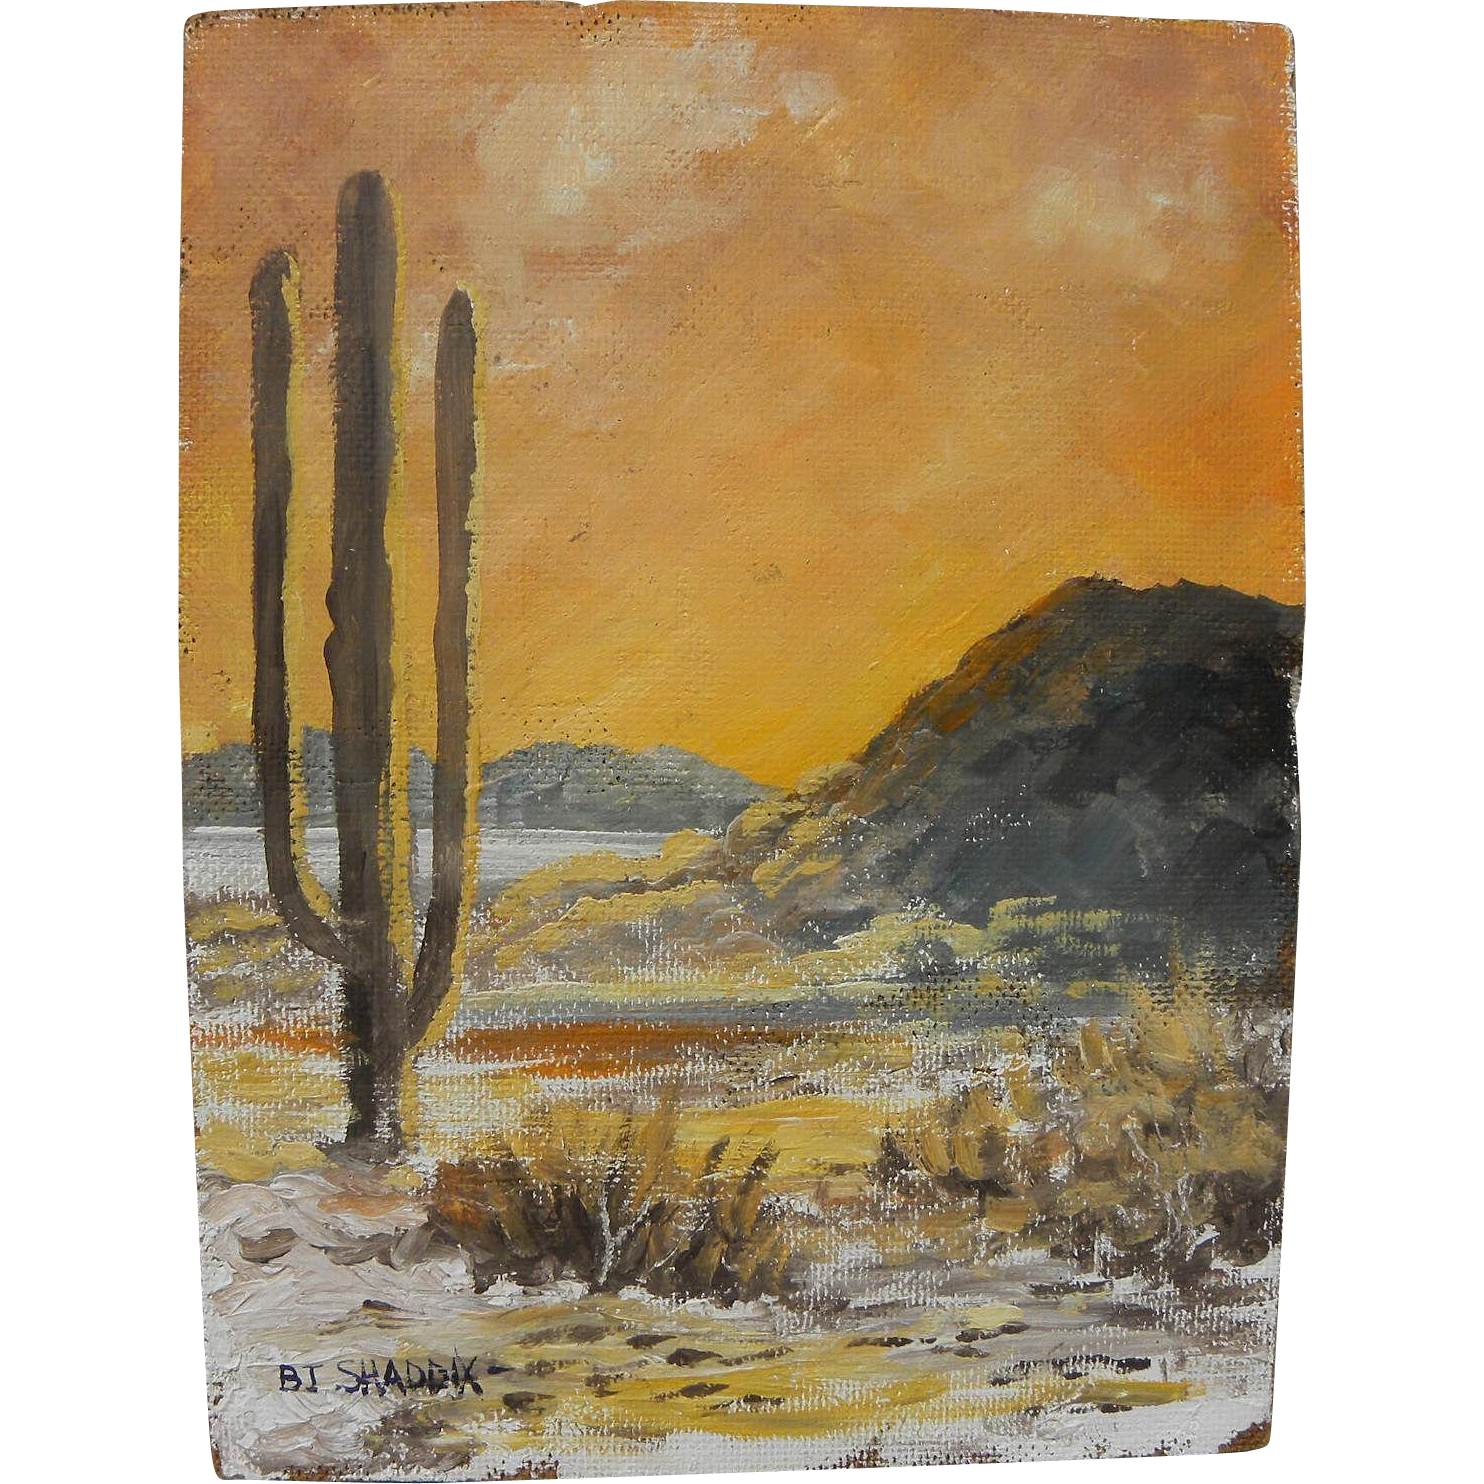 BILL SHADDIX (1931-) impressionist oil sketch painting of the Arizona desert